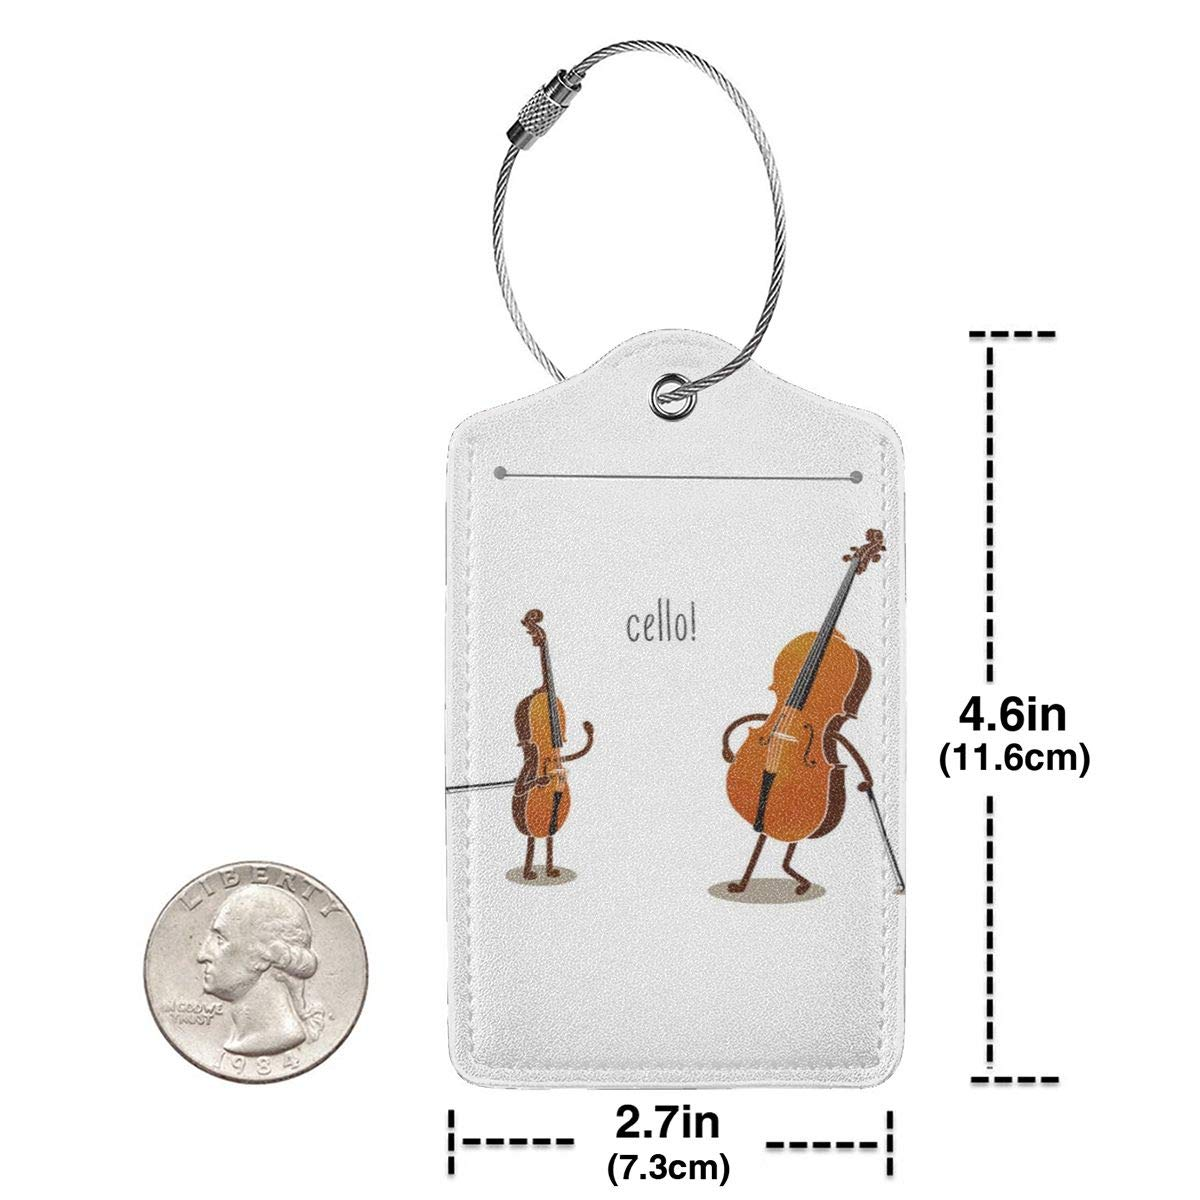 Cello Leather Luggage Tags Personalized Privacy Cover With Adjustable Strap